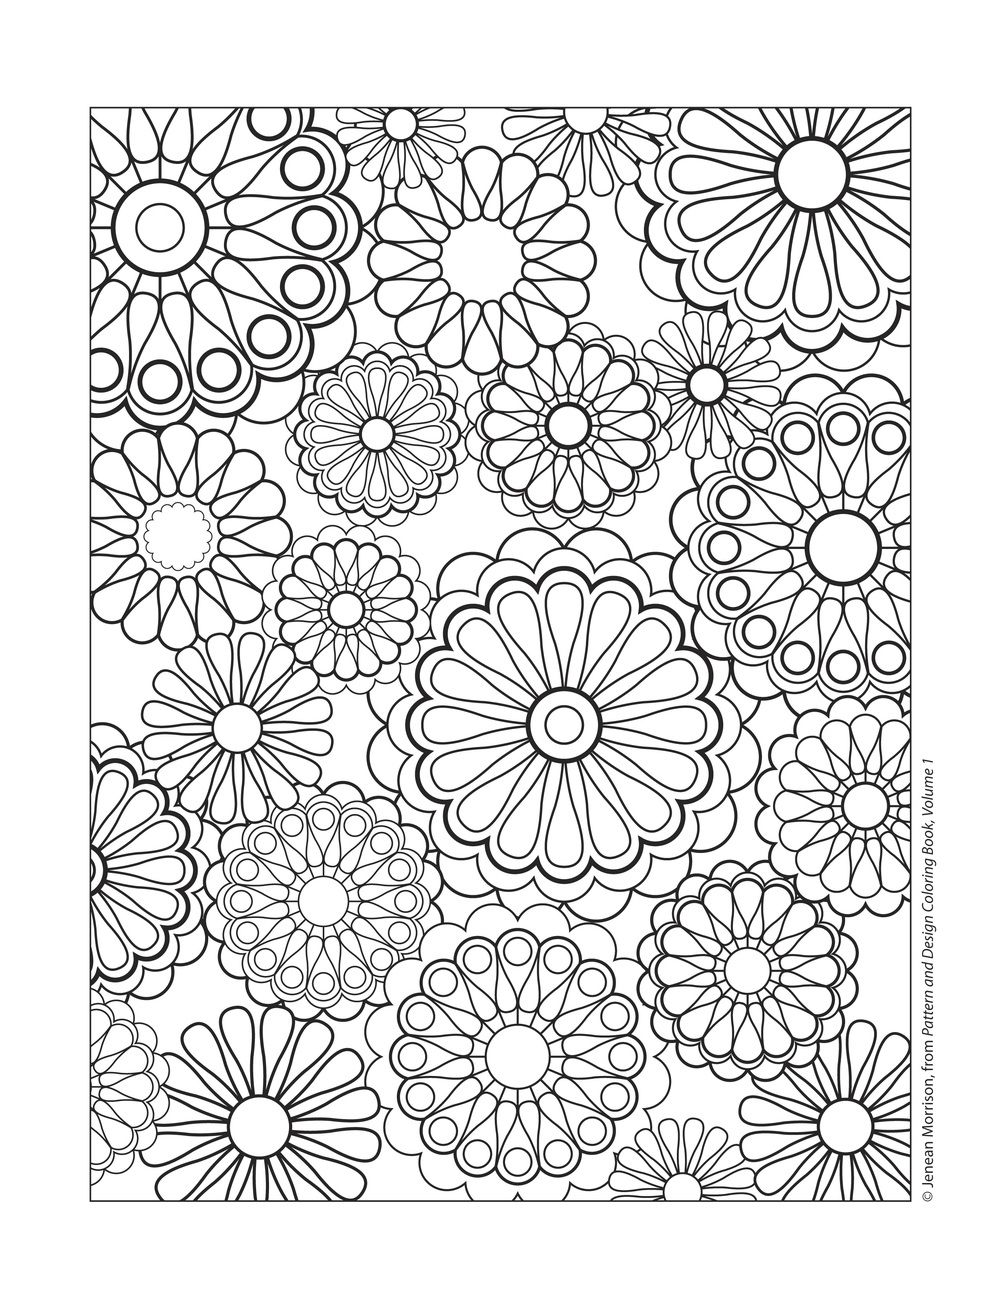 Design Patterns Coloring Pages